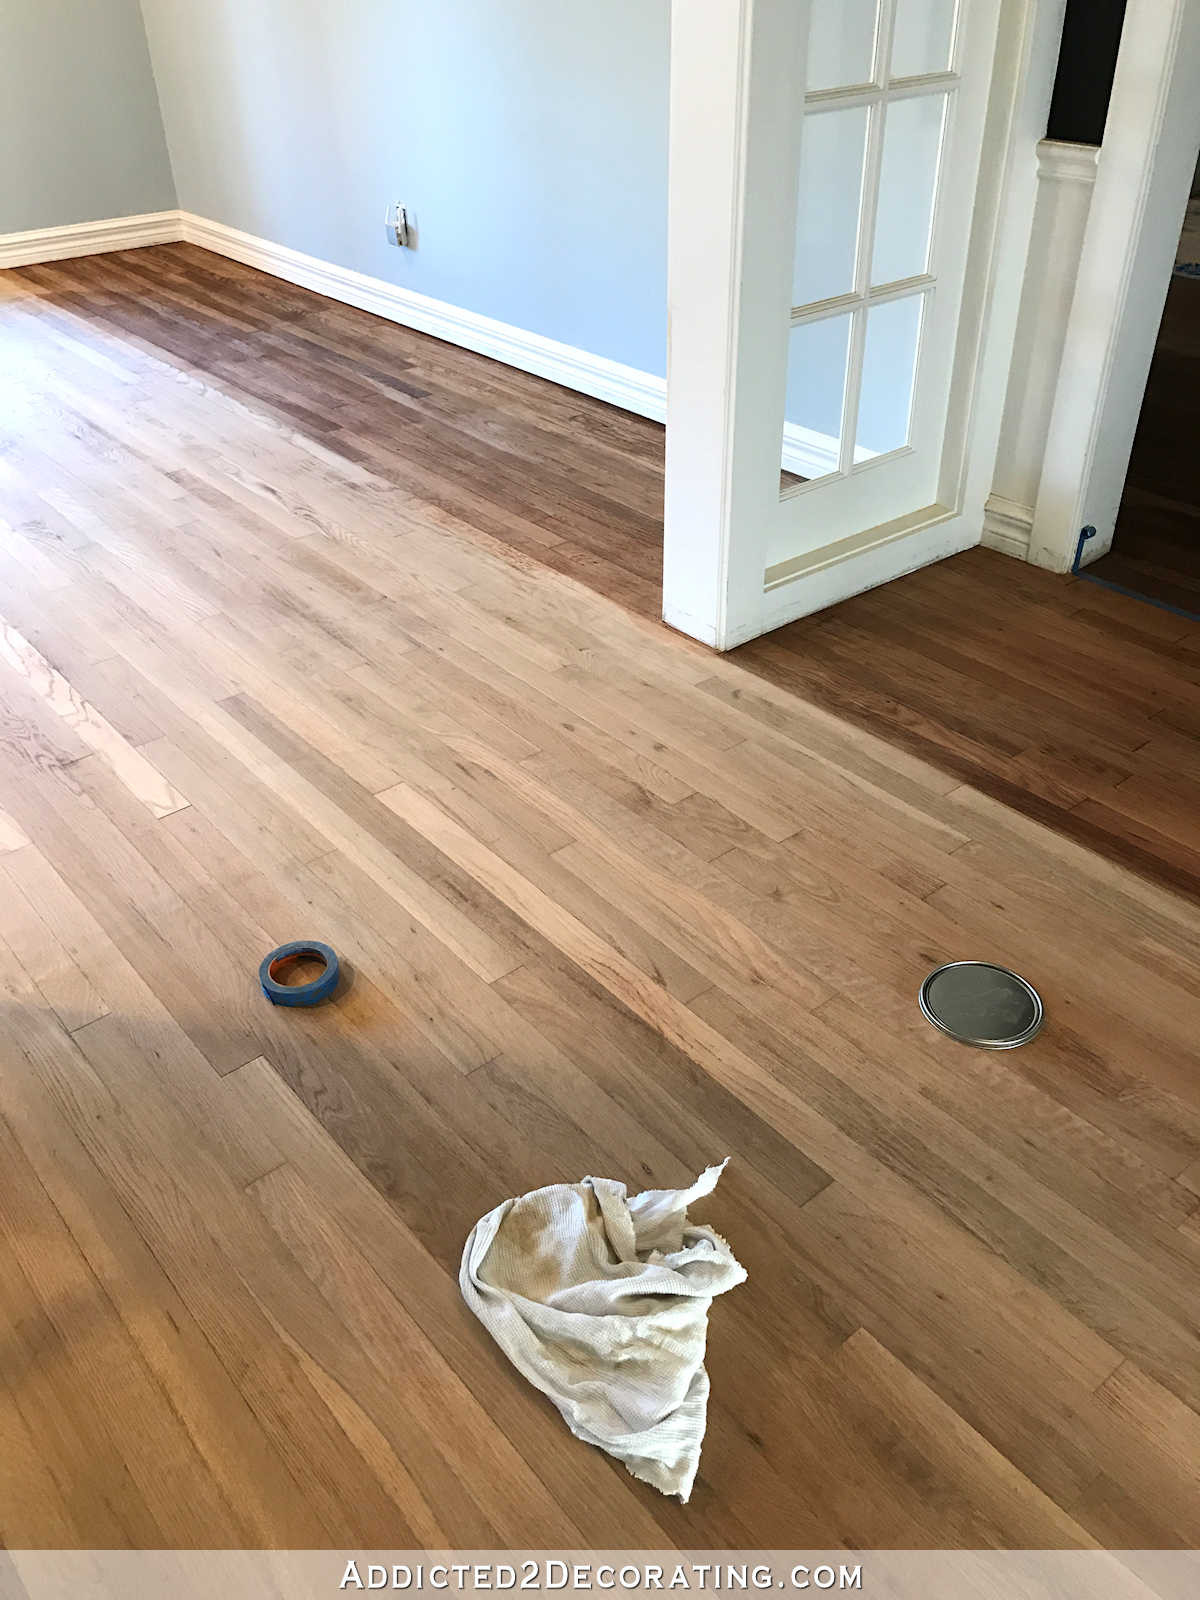 2 different hardwood floors of adventures in staining my red oak hardwood floors products process with regard to staining red oak hardwood floors 3 entryway and music room